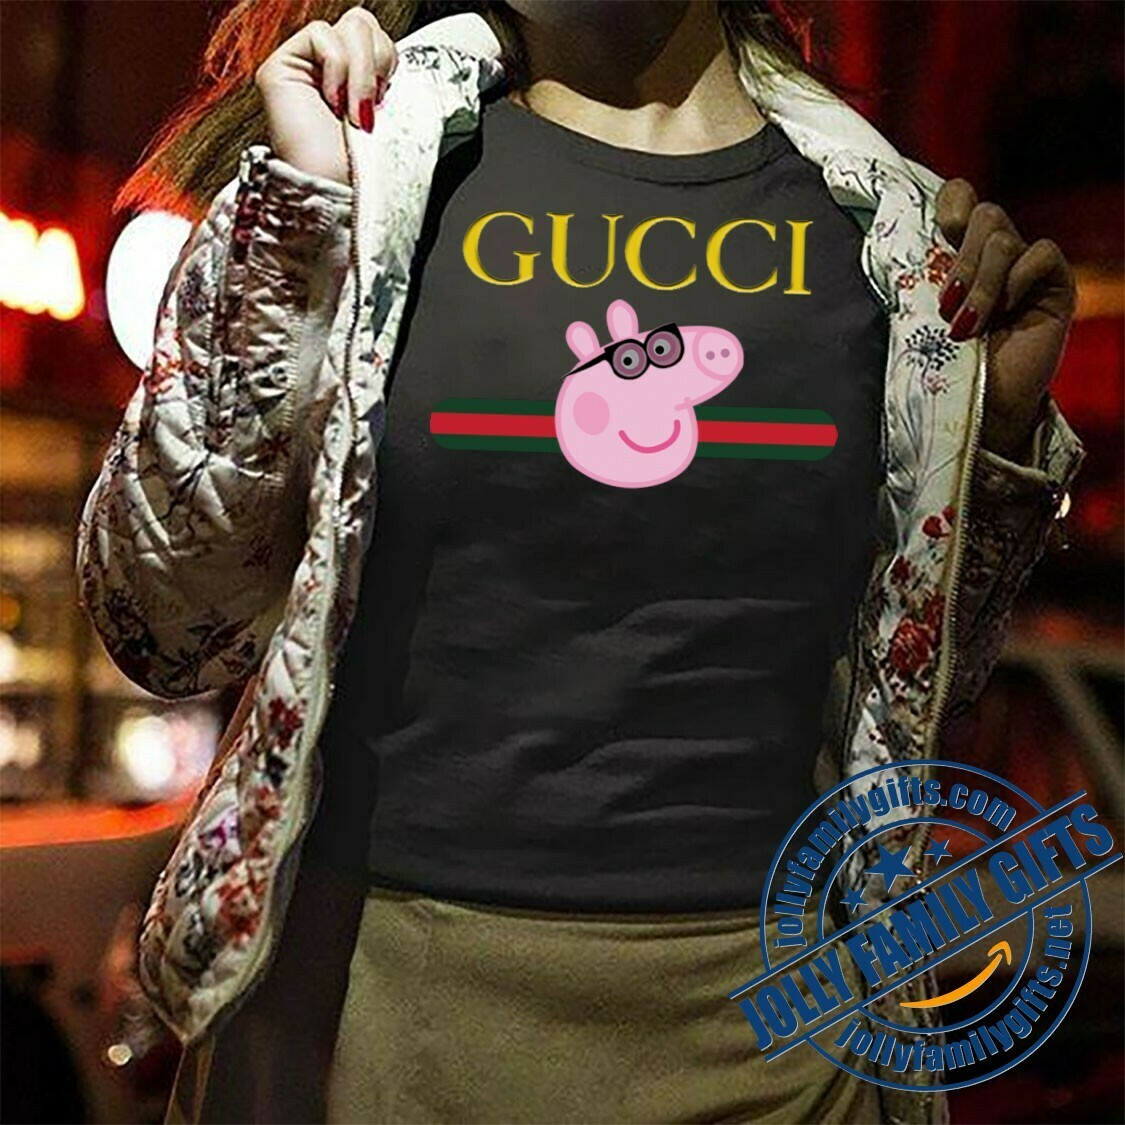 Peppa Pig,Logo Gucci,Gucci Shirt,Gucci T-shirt,Gucci Logo,Gucci Fashion shirt,Fashion shirt,Gucci Design shirt,Snake Gucci vintage shirt Unisex T-Shirt Hoodie Sweatshirt Sweater for Ladies Women Men